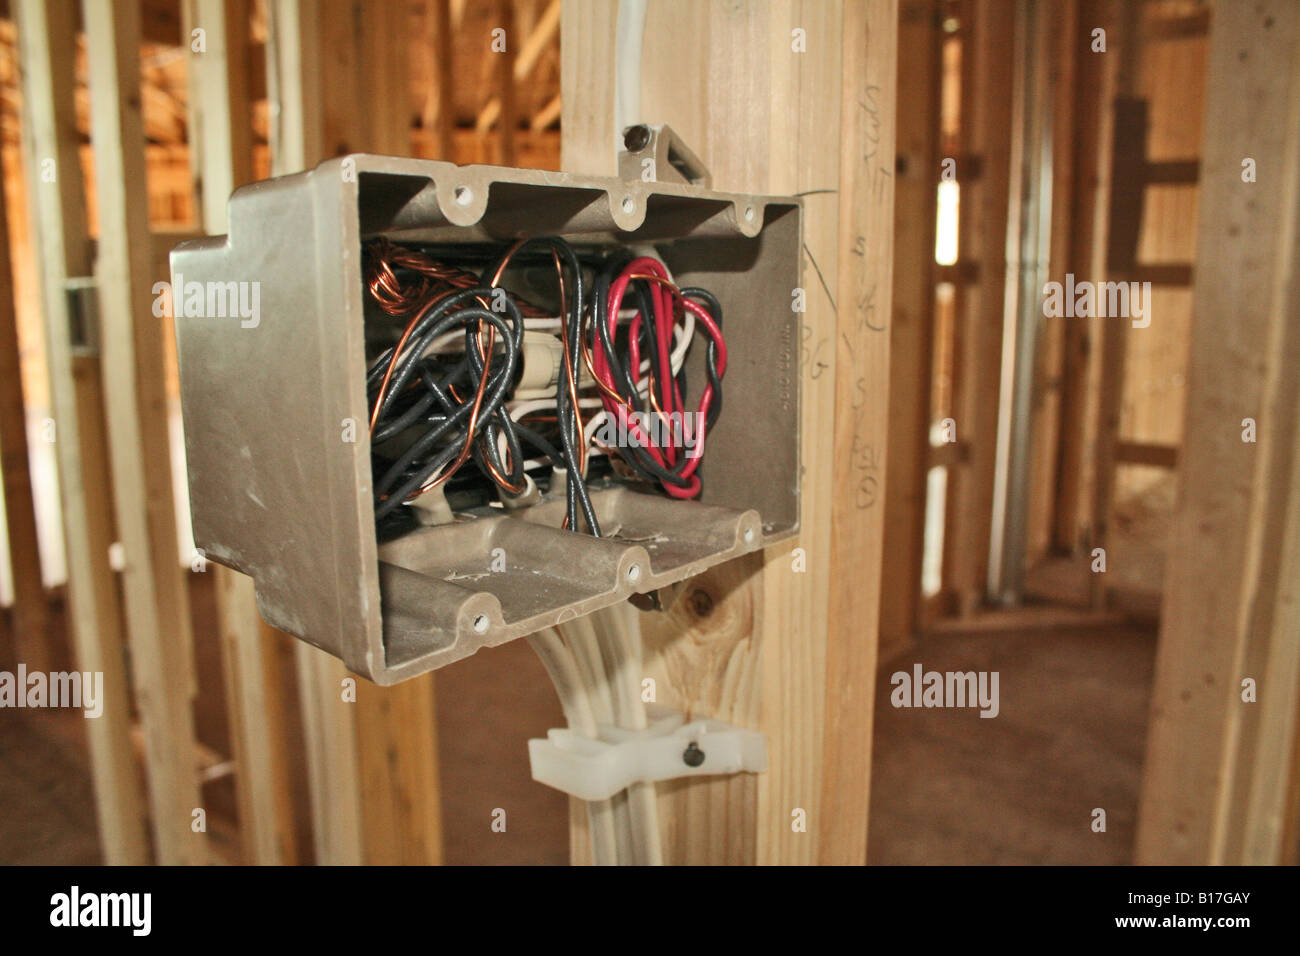 home electrical outlet wiring best wiring and wireframe wiring rh mountprospectweather us Residential Wiring House Wiring Codes